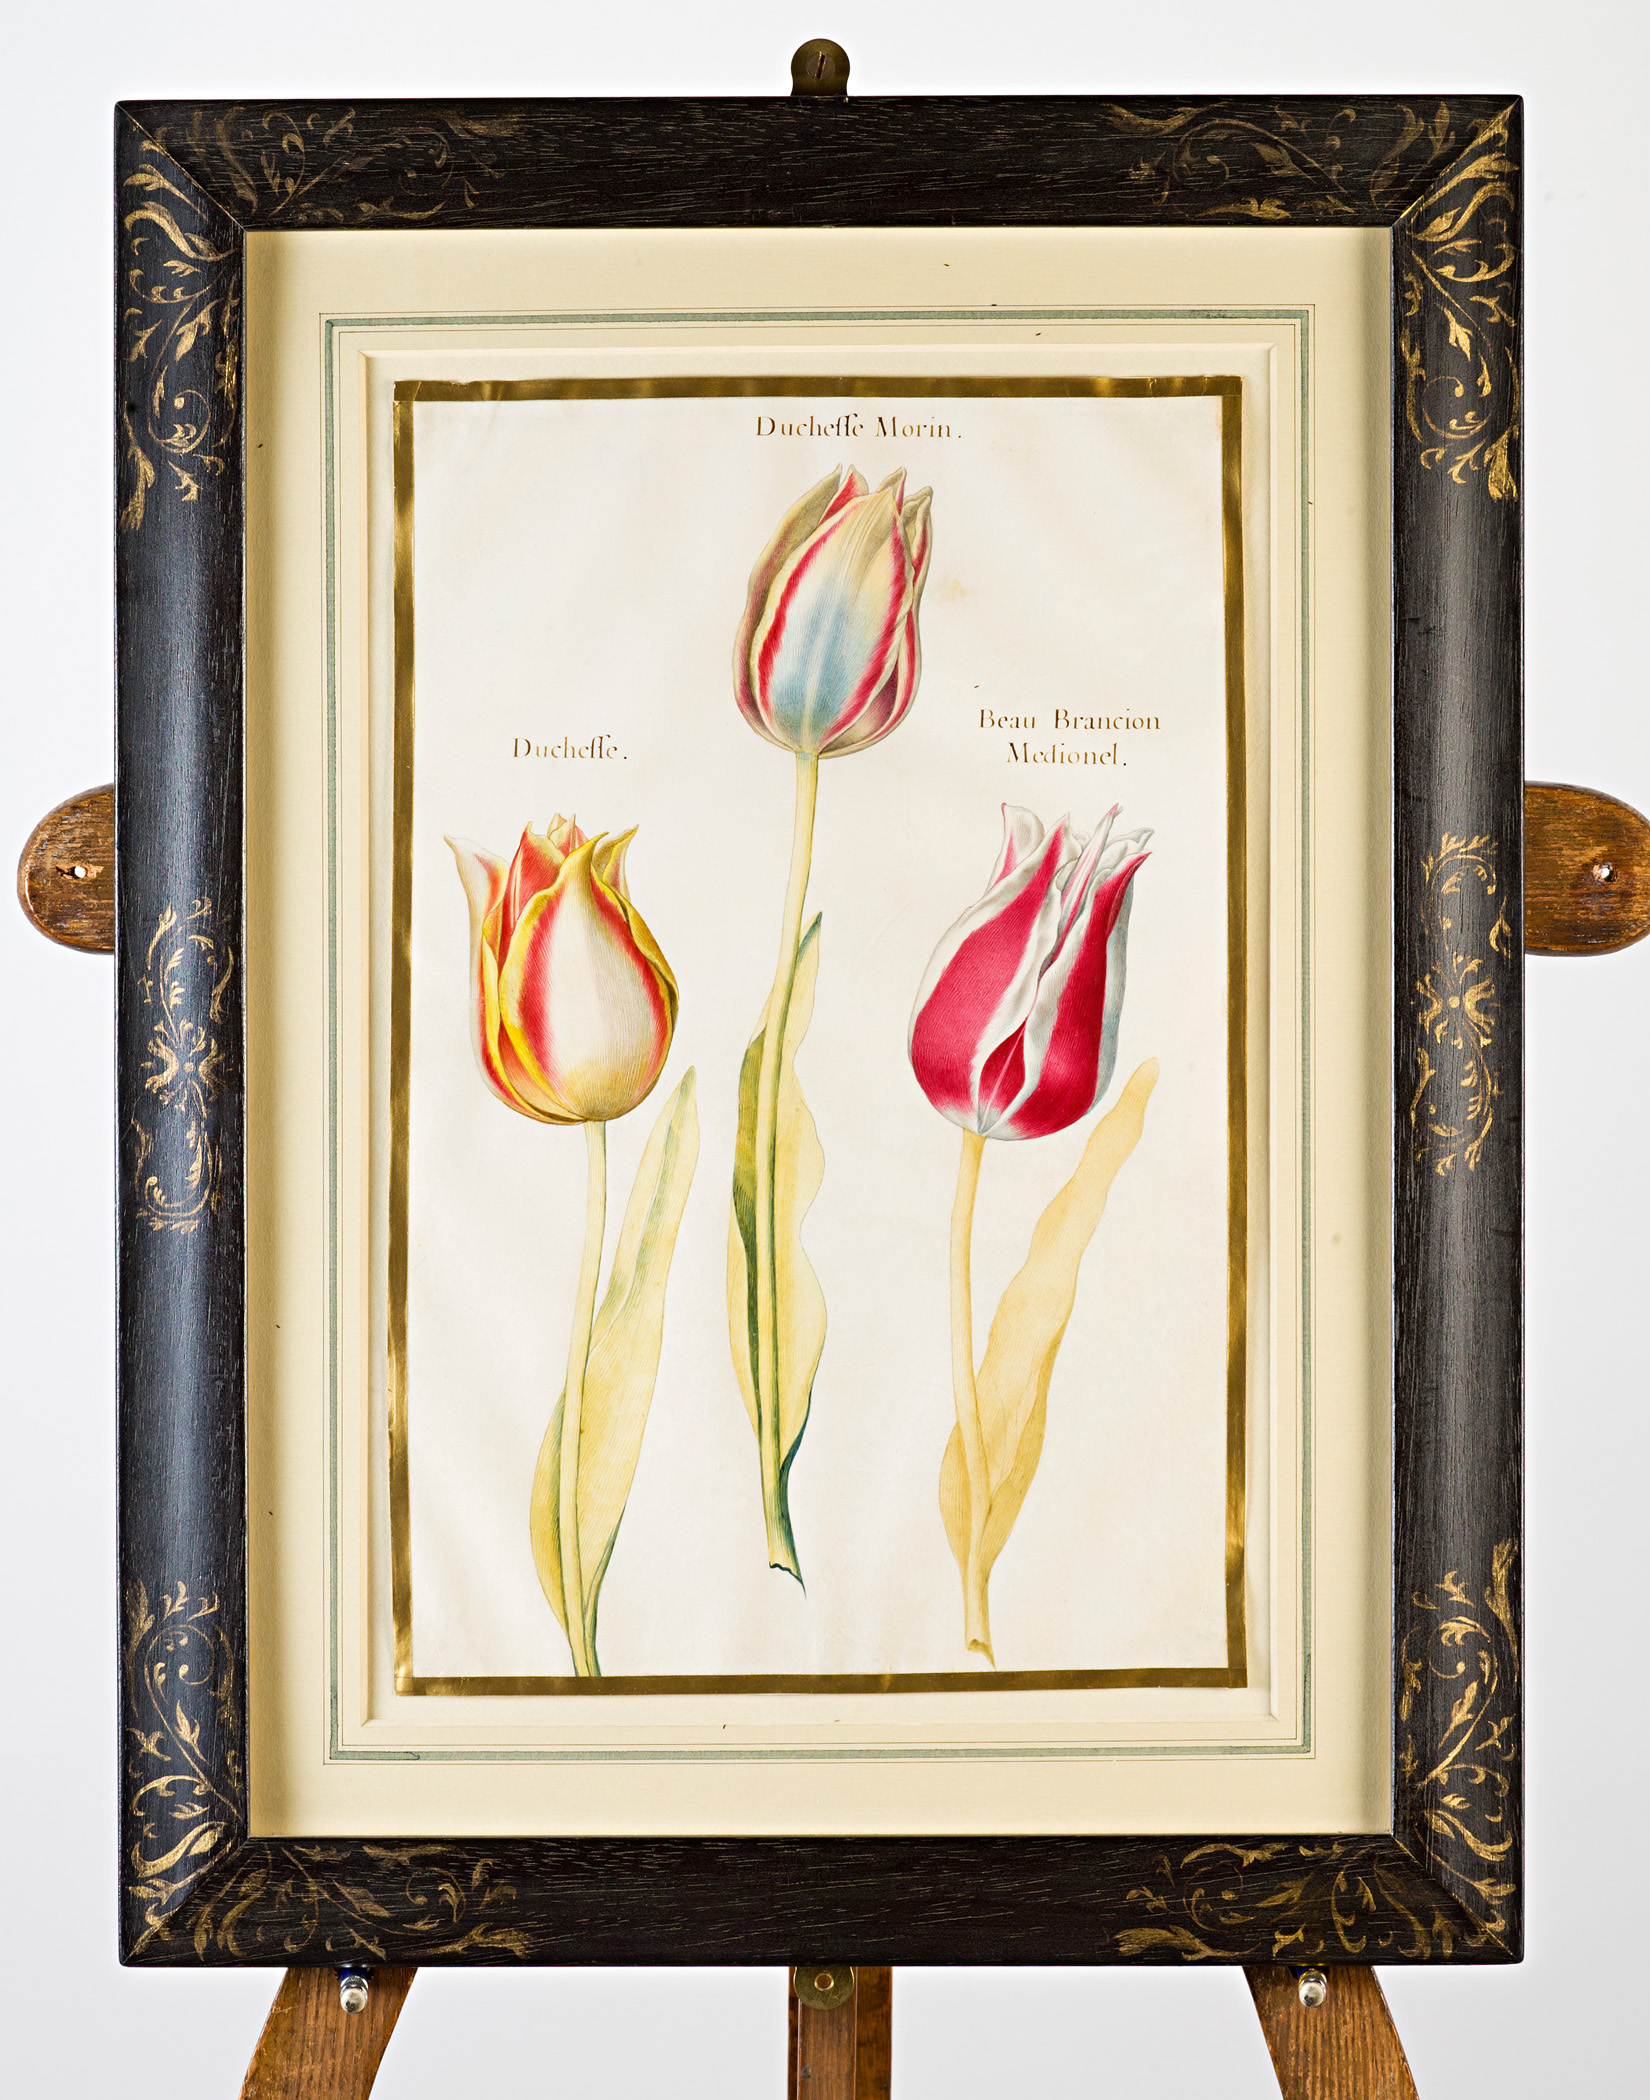 Three tulips, inscribed with title: 'Duchesse, Duchesse Morin, Beau Brancion Medionel', Attributed to Claude Aubriet (c.1665-1742).